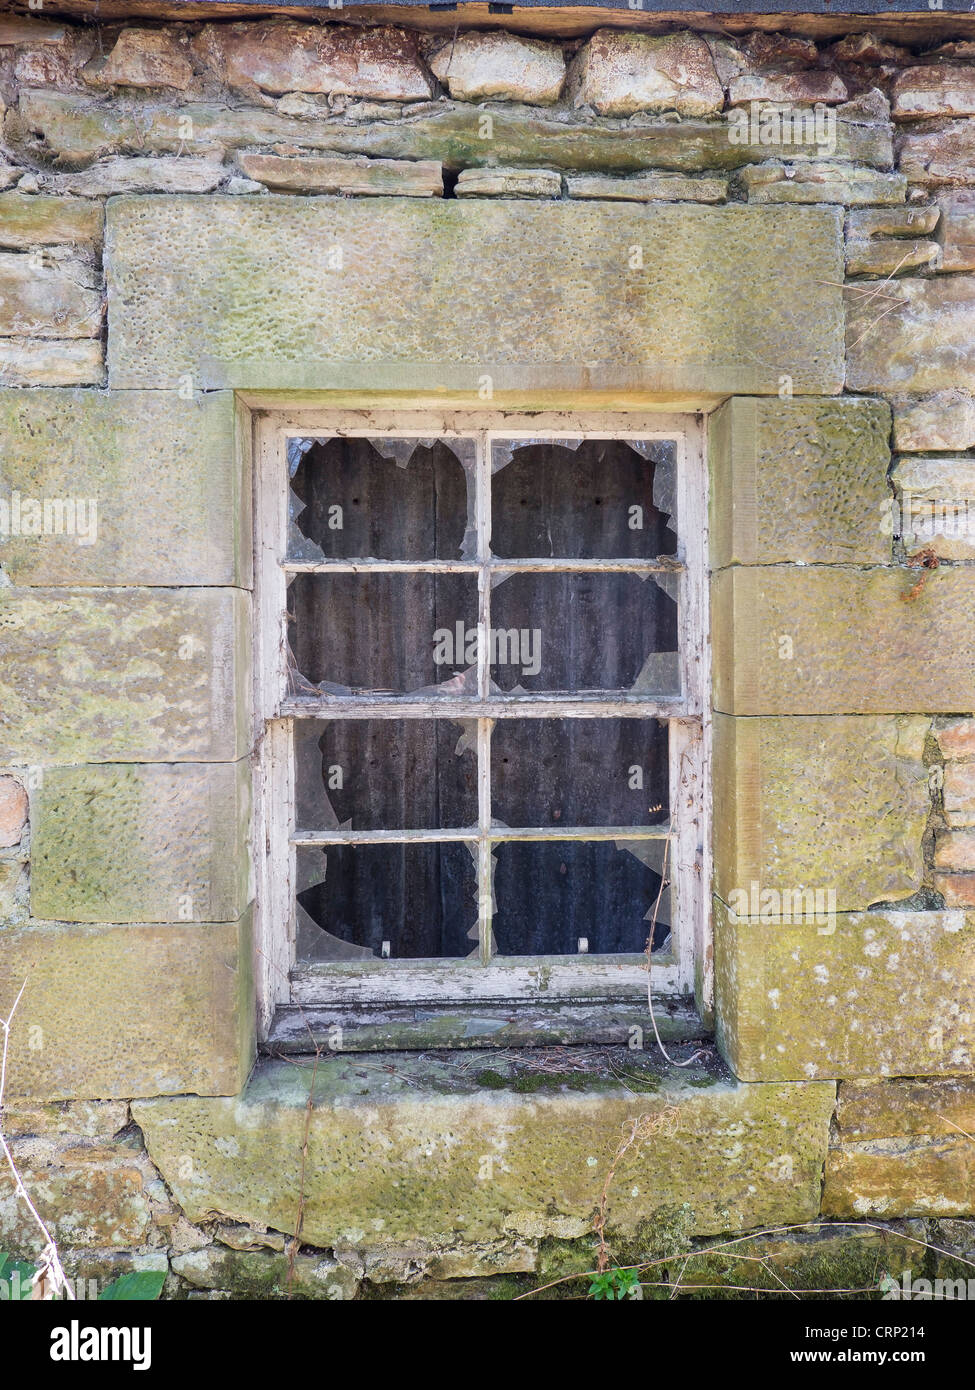 A broken window in an old derelict stone cottage in Scotland. - Stock Image